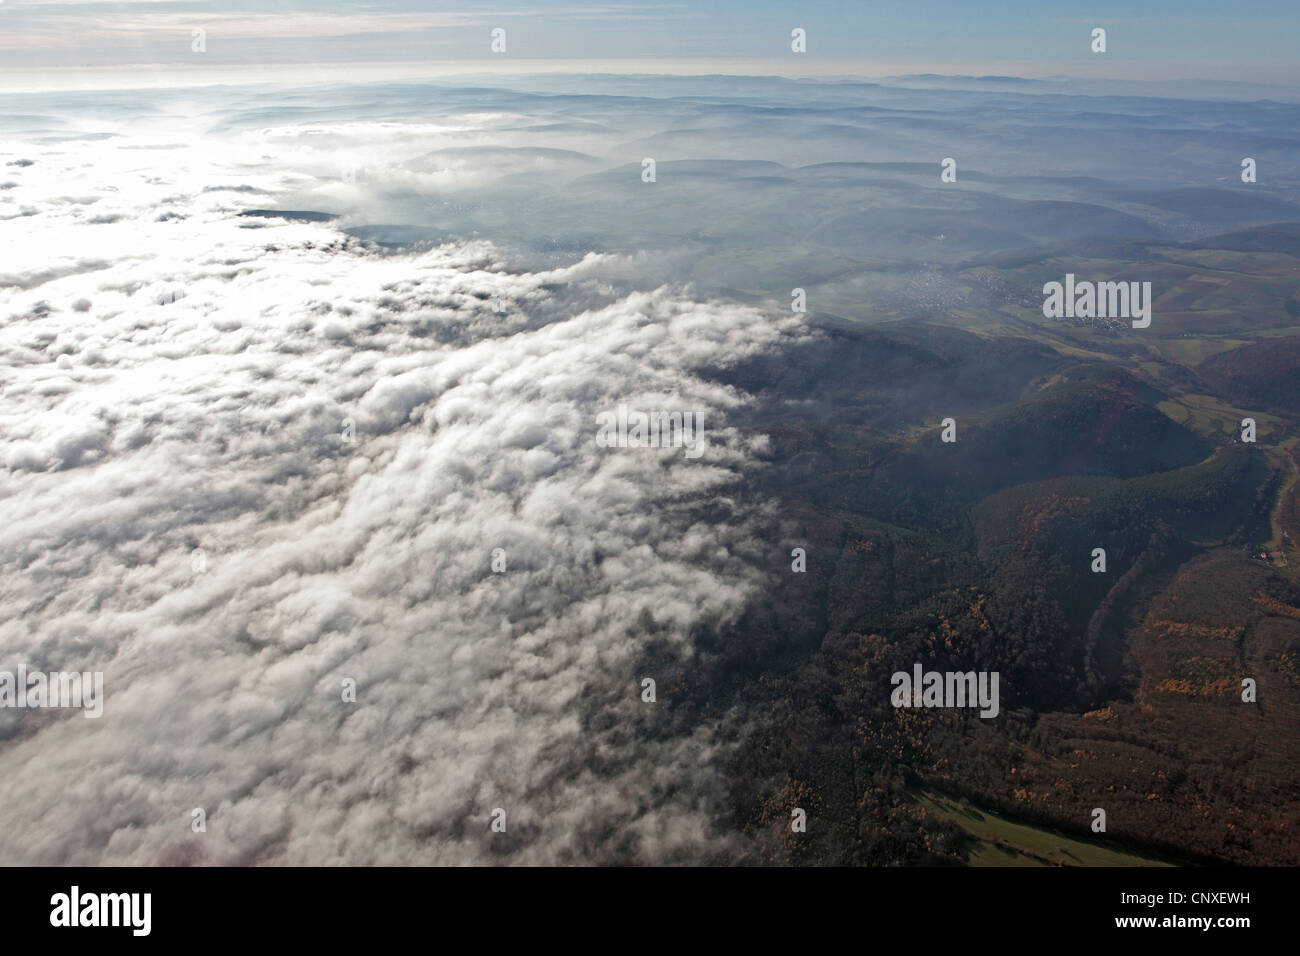 view to clouds and fog boundary, Germany - Stock Image